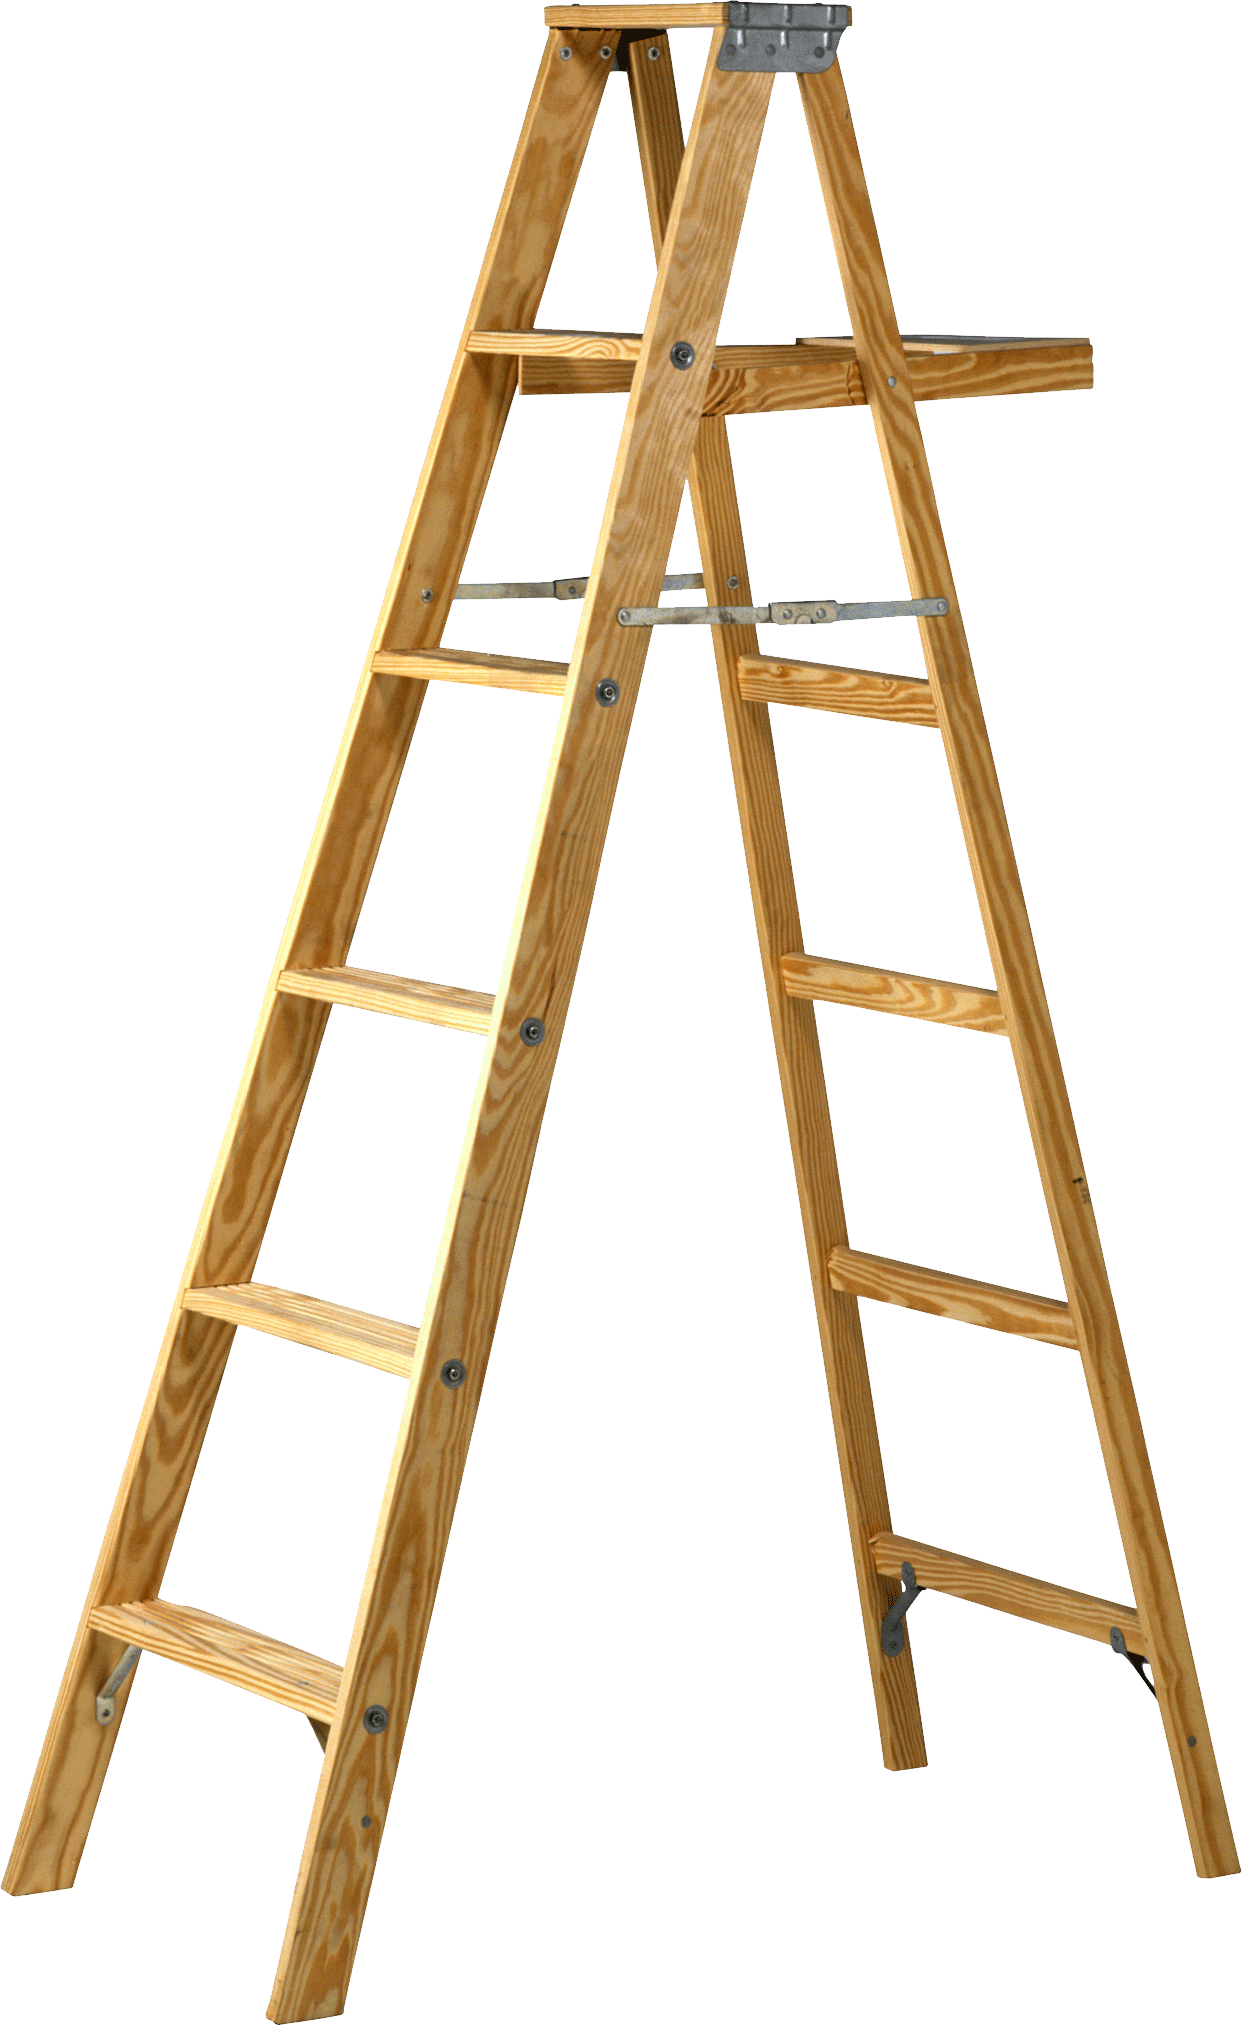 Ladder PNG Free Download SVG Clip arts